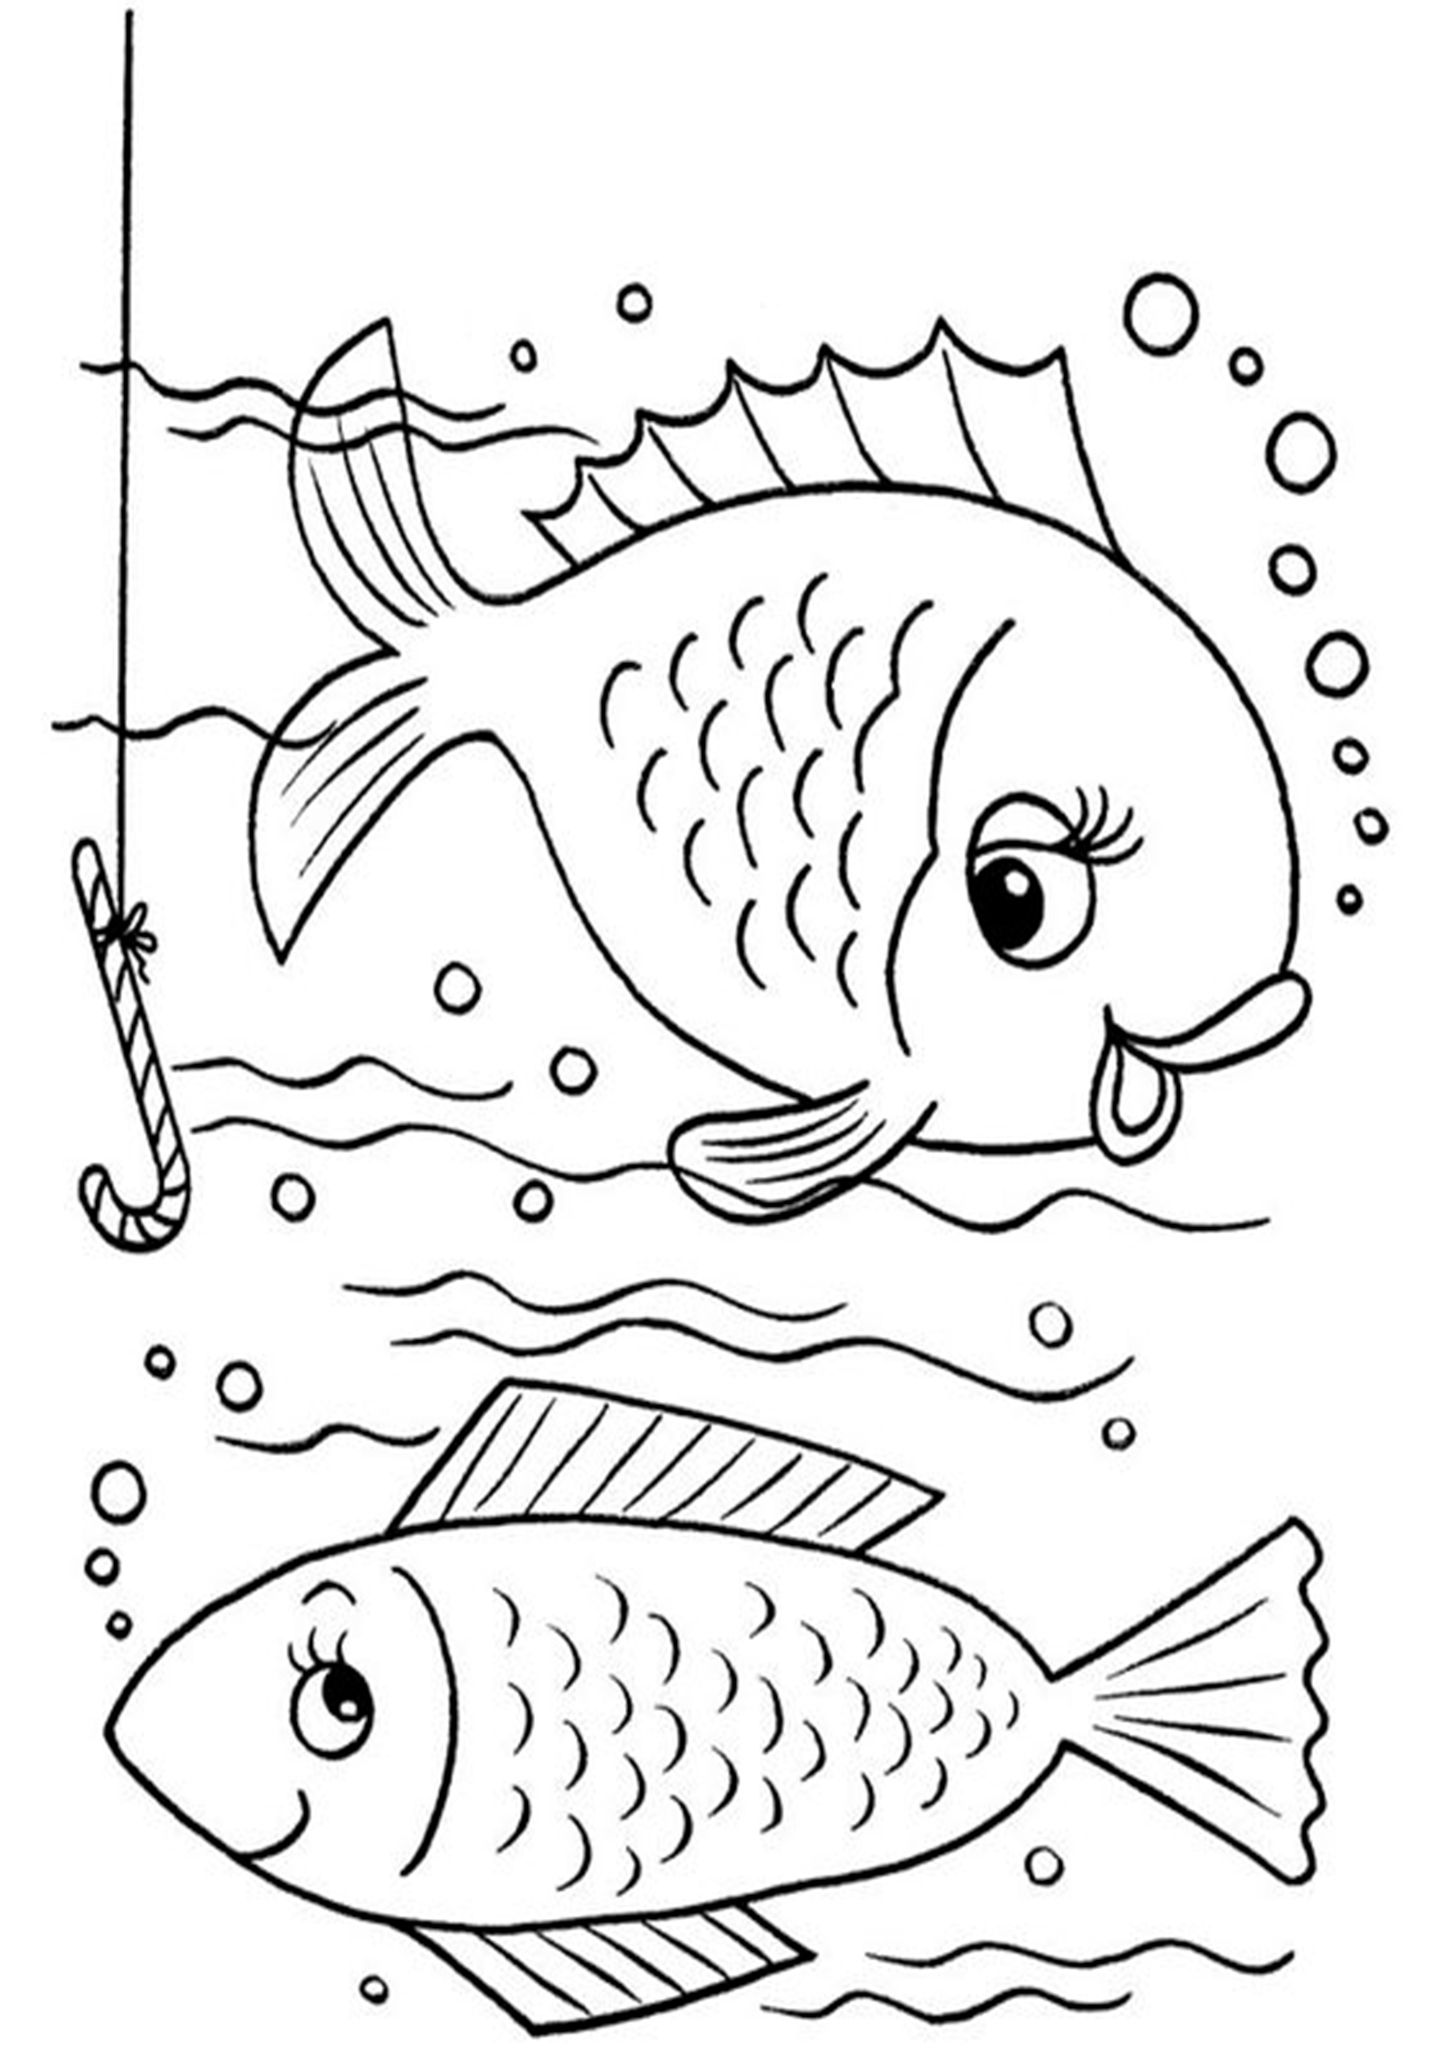 easy fish coloring pages fish drawing for colouring at getdrawings free download fish coloring pages easy